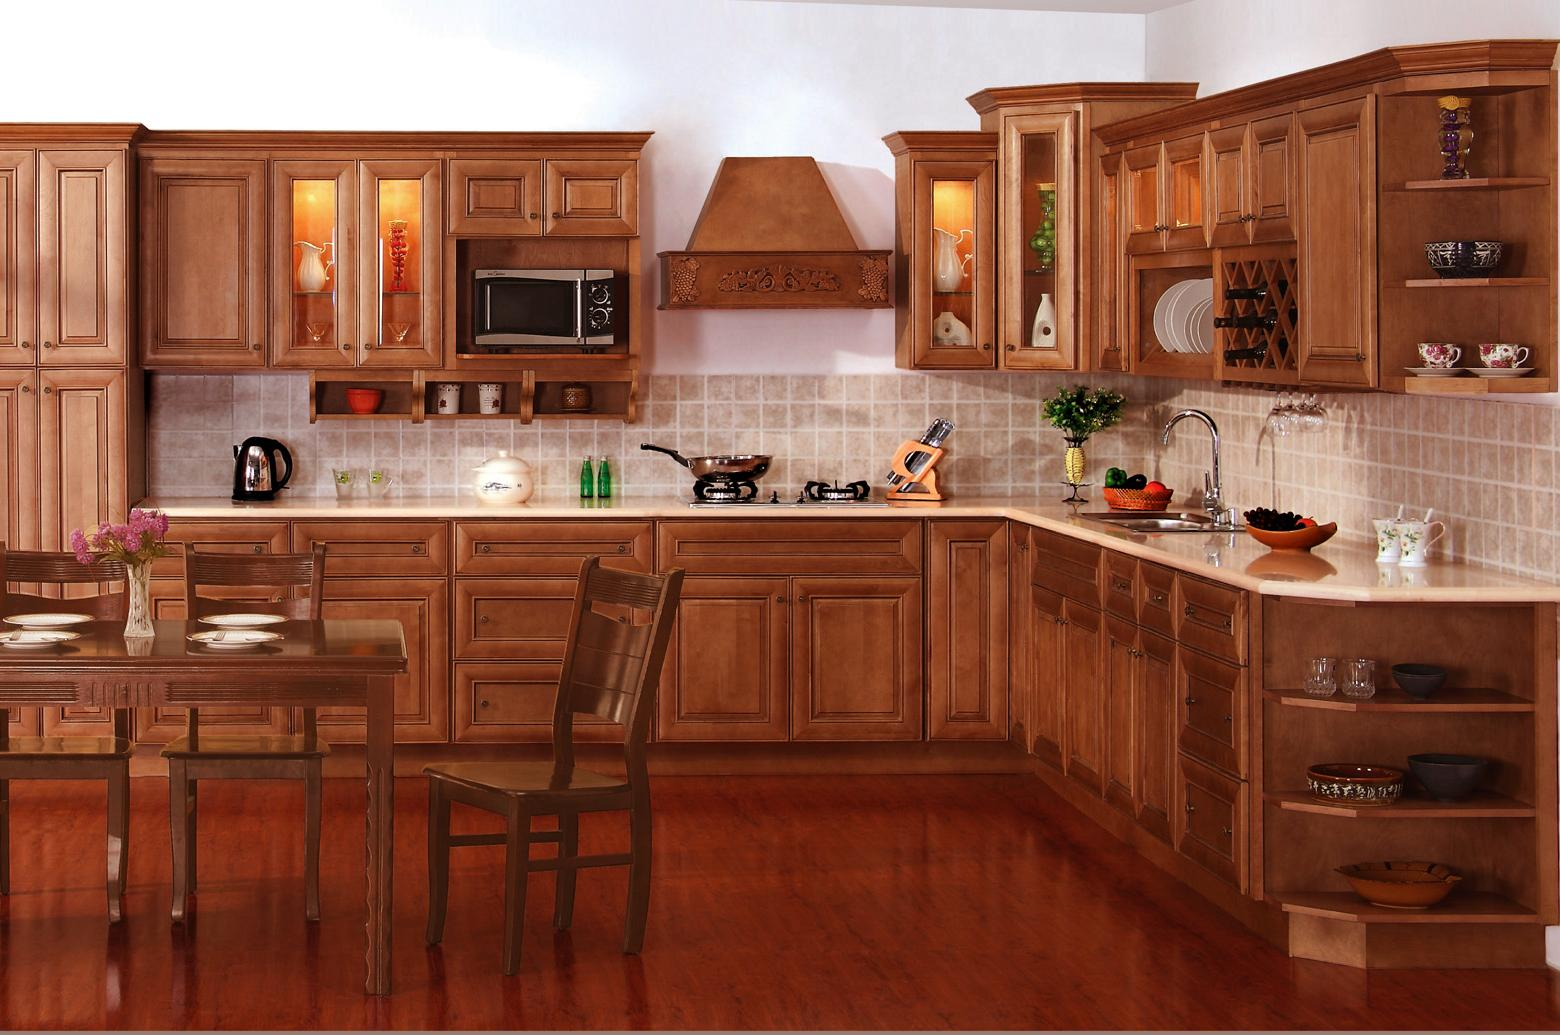 The cabinet spot april 2011 for Kitchen cabinet finishes